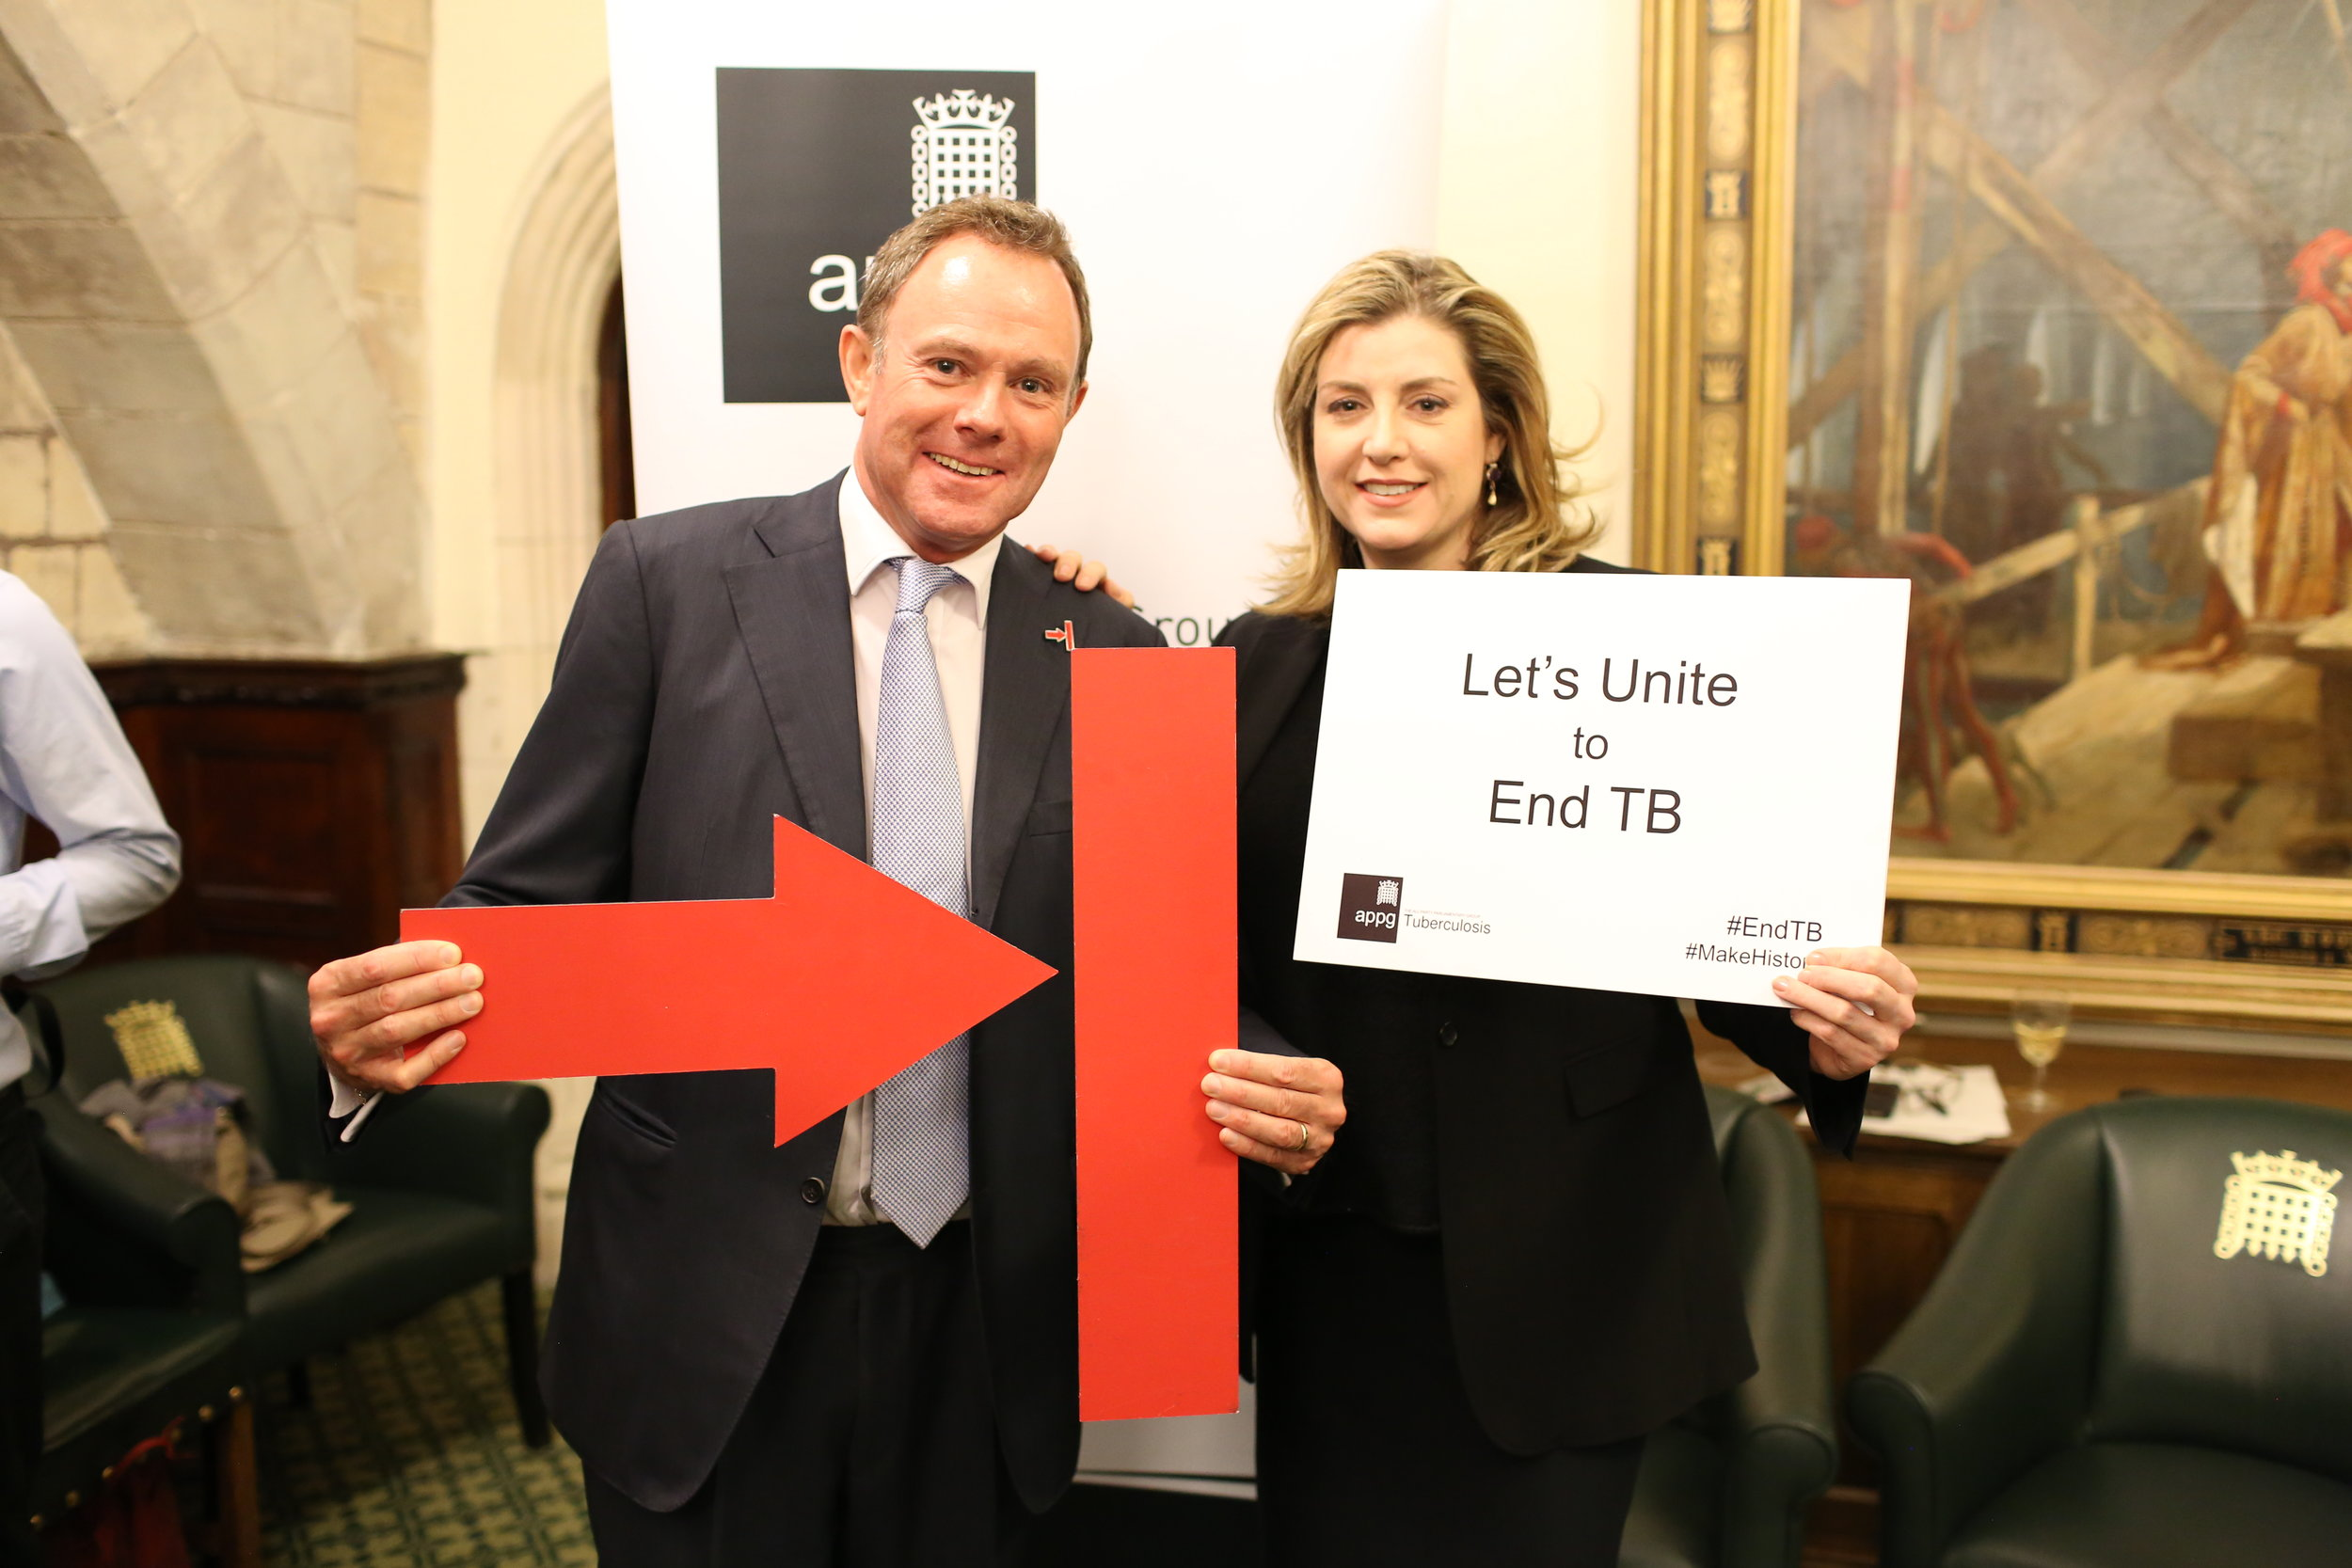 Nick meeting the Secretary of State for International Development, Penny Mordaunt, at a meeting of the All Party Parliamentary Group on Global Tuberculosis (21 March 2018)